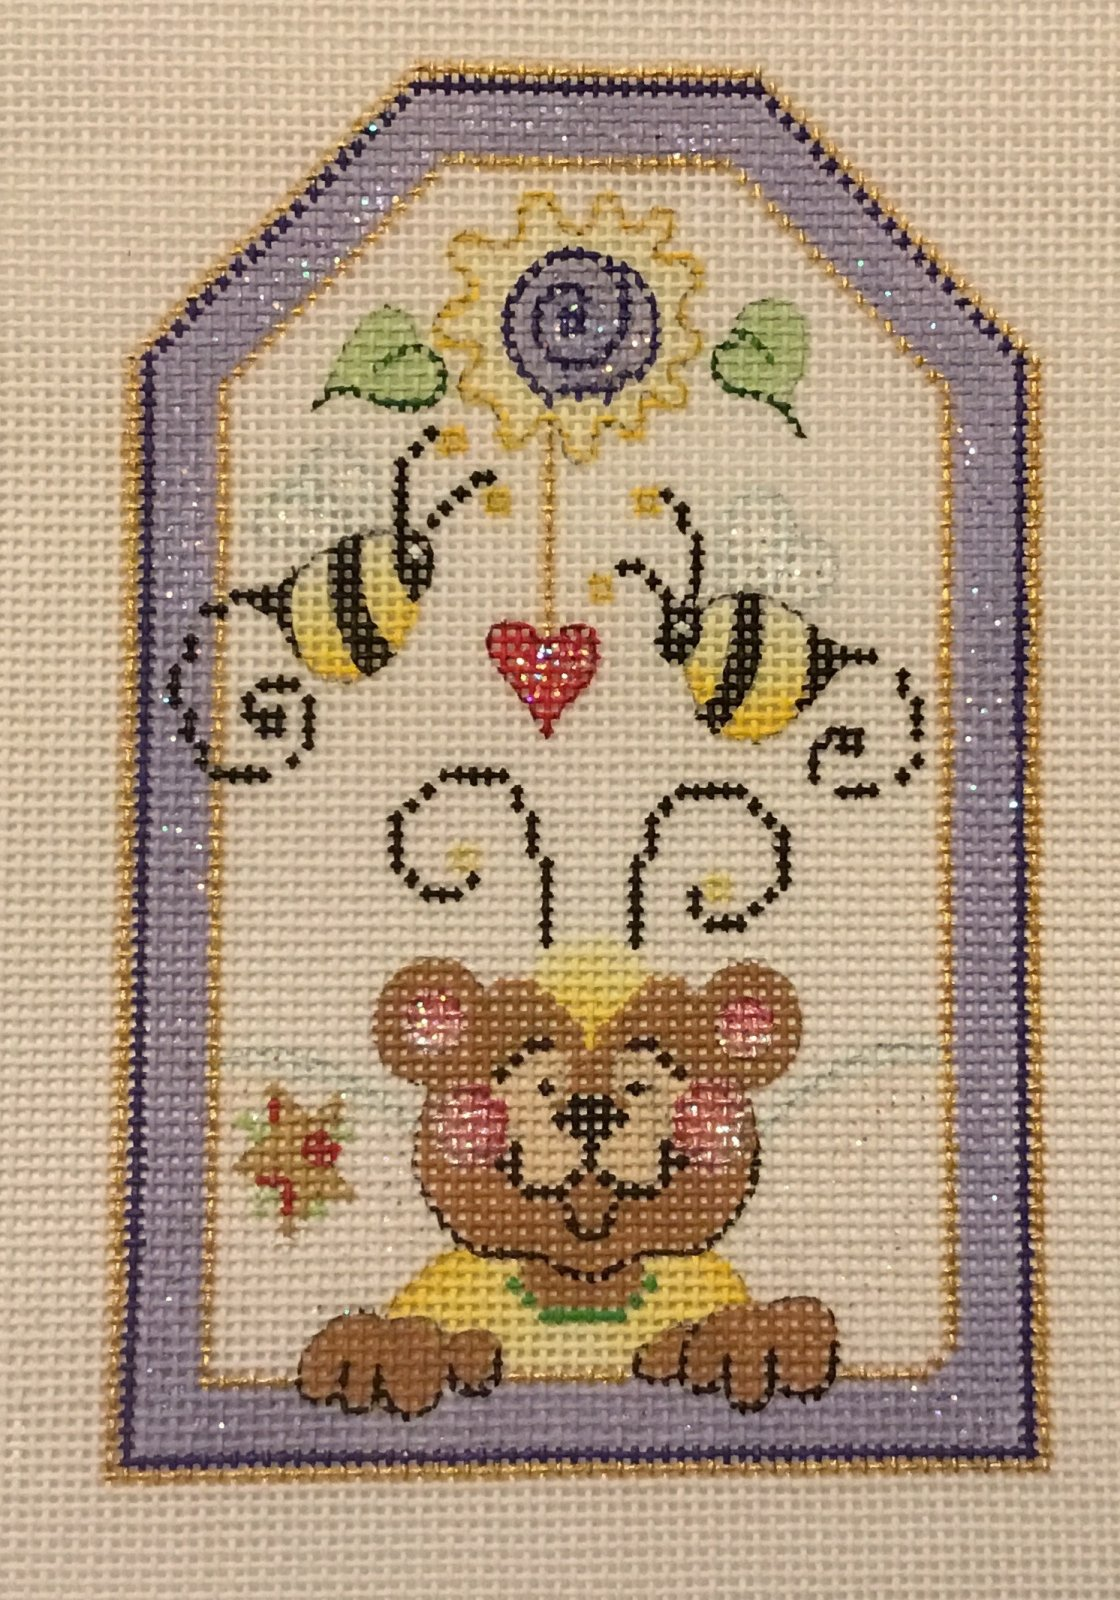 Bear and Bees,18 ct.,3 1/2x5 1/4